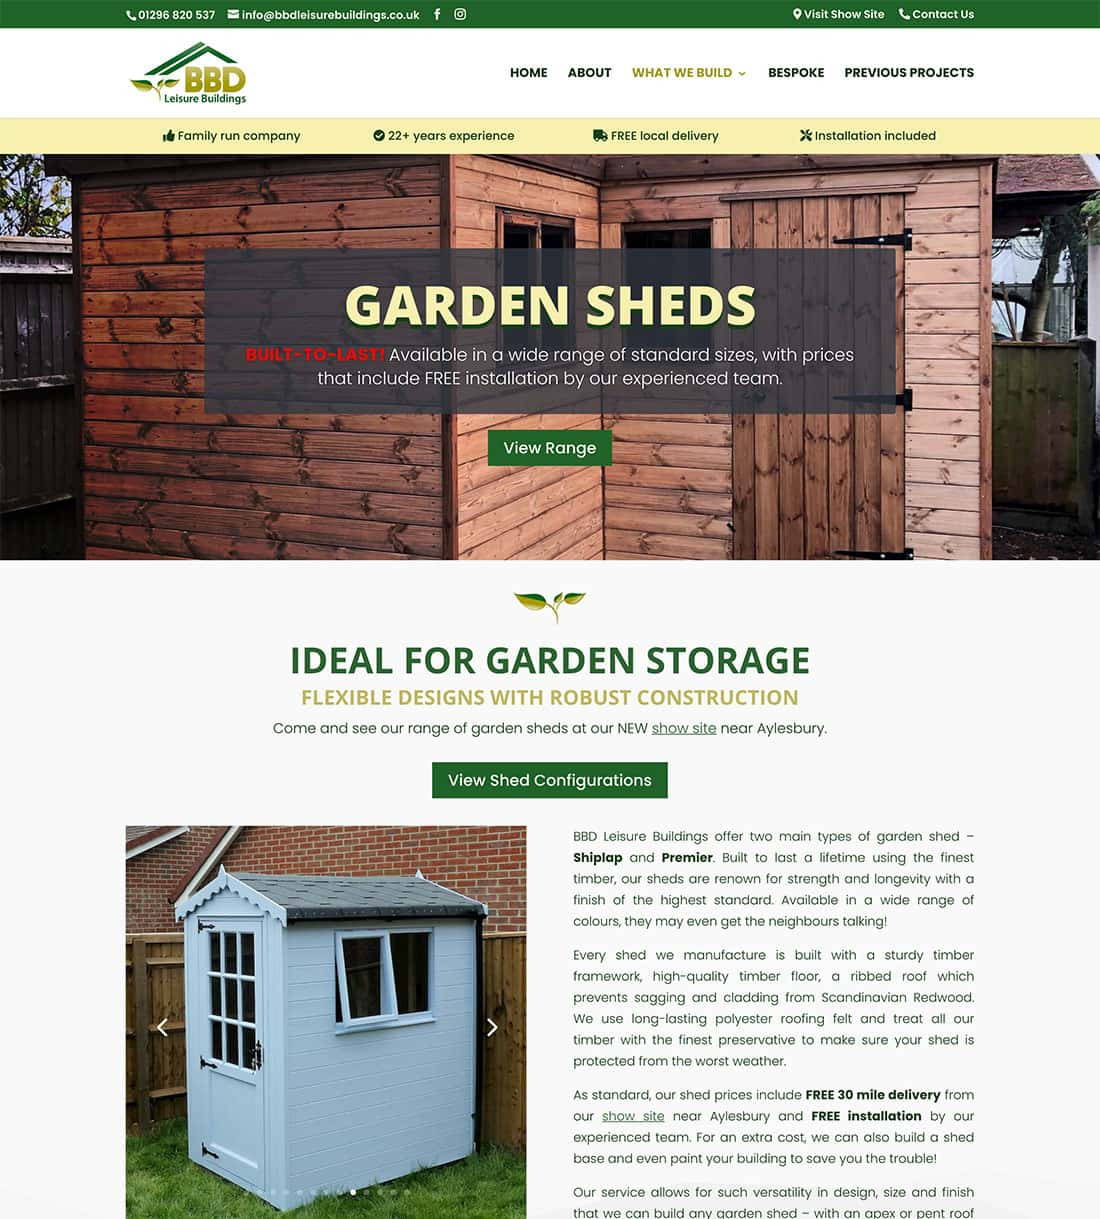 New Design - BBD Leisure Buildings Sheds Page